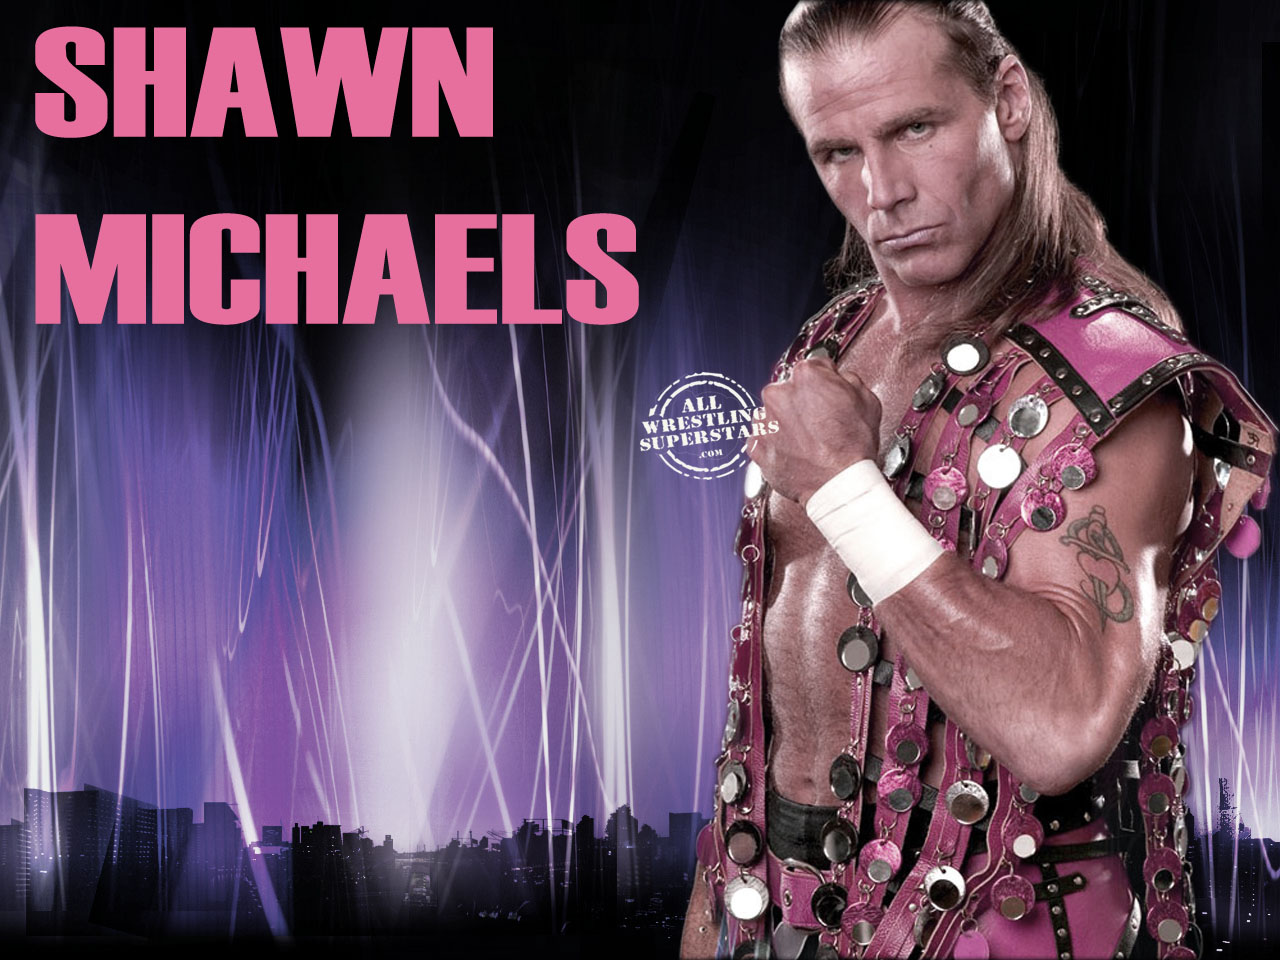 Wwe Champs Hbk Heart Break Kid Shawn Michaels